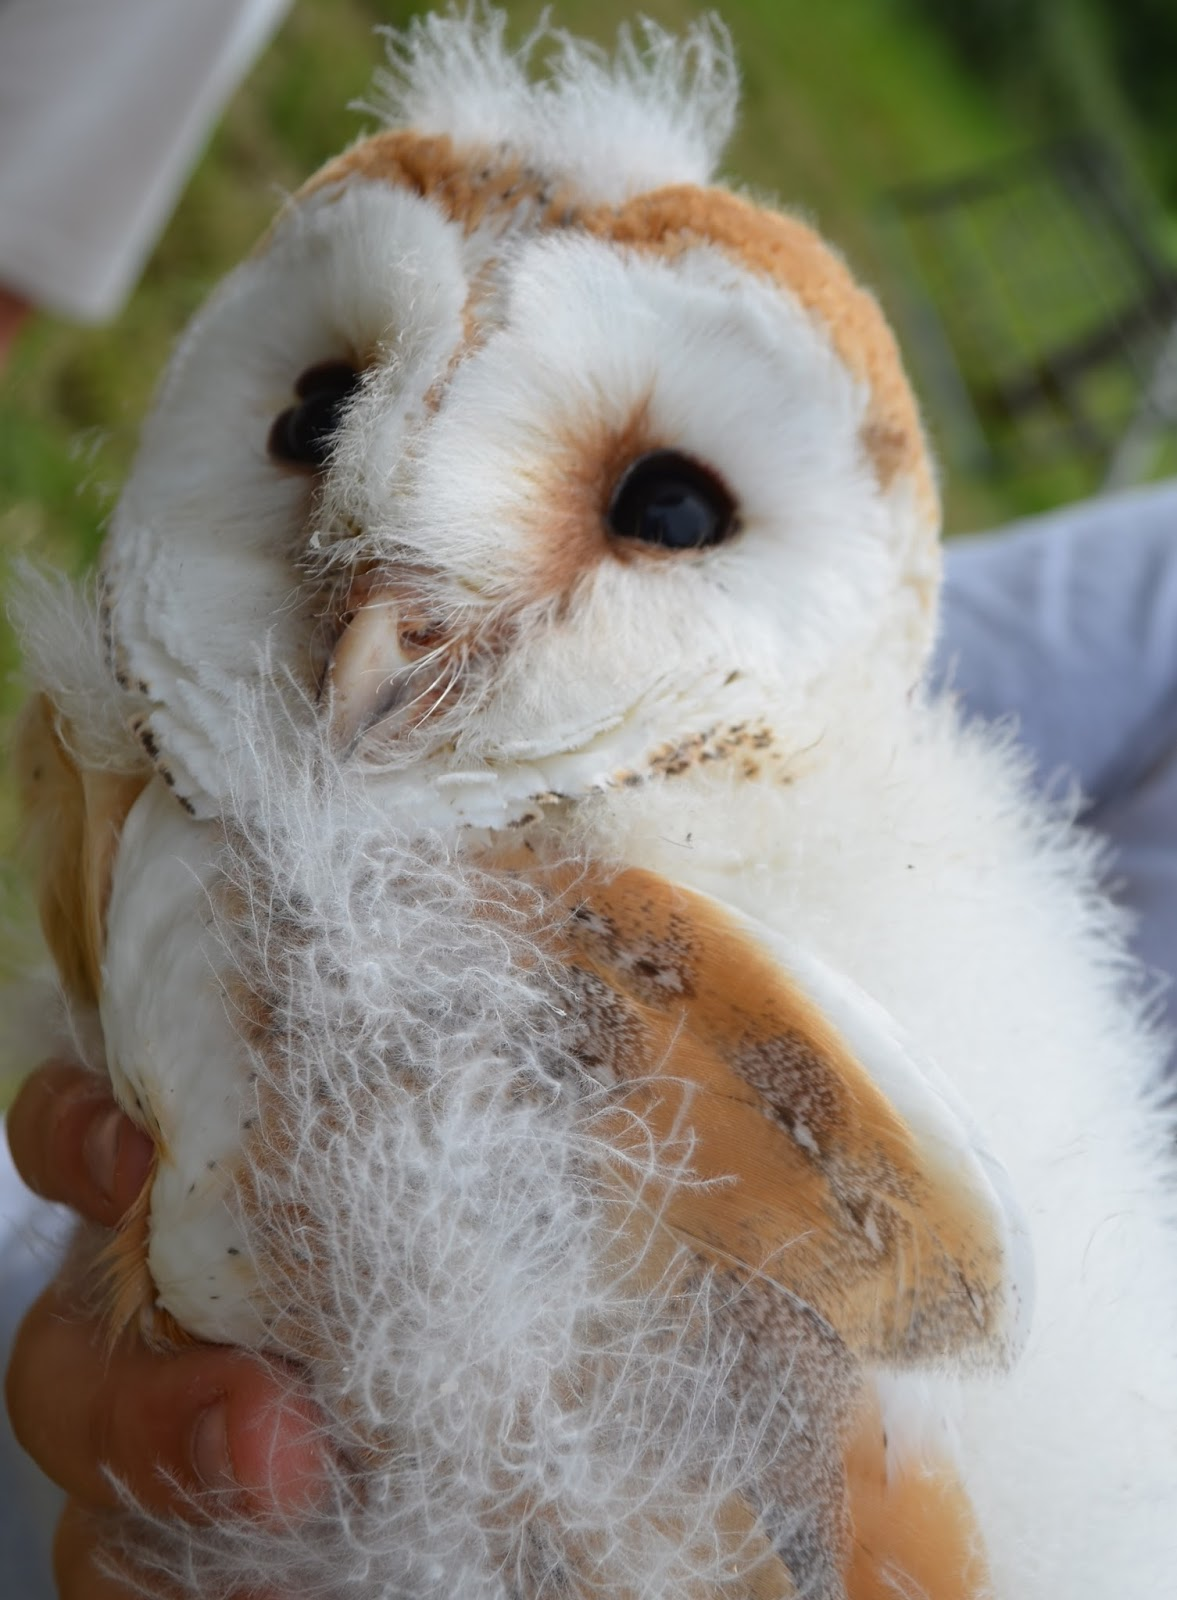 Baby barn owl images - photo#12